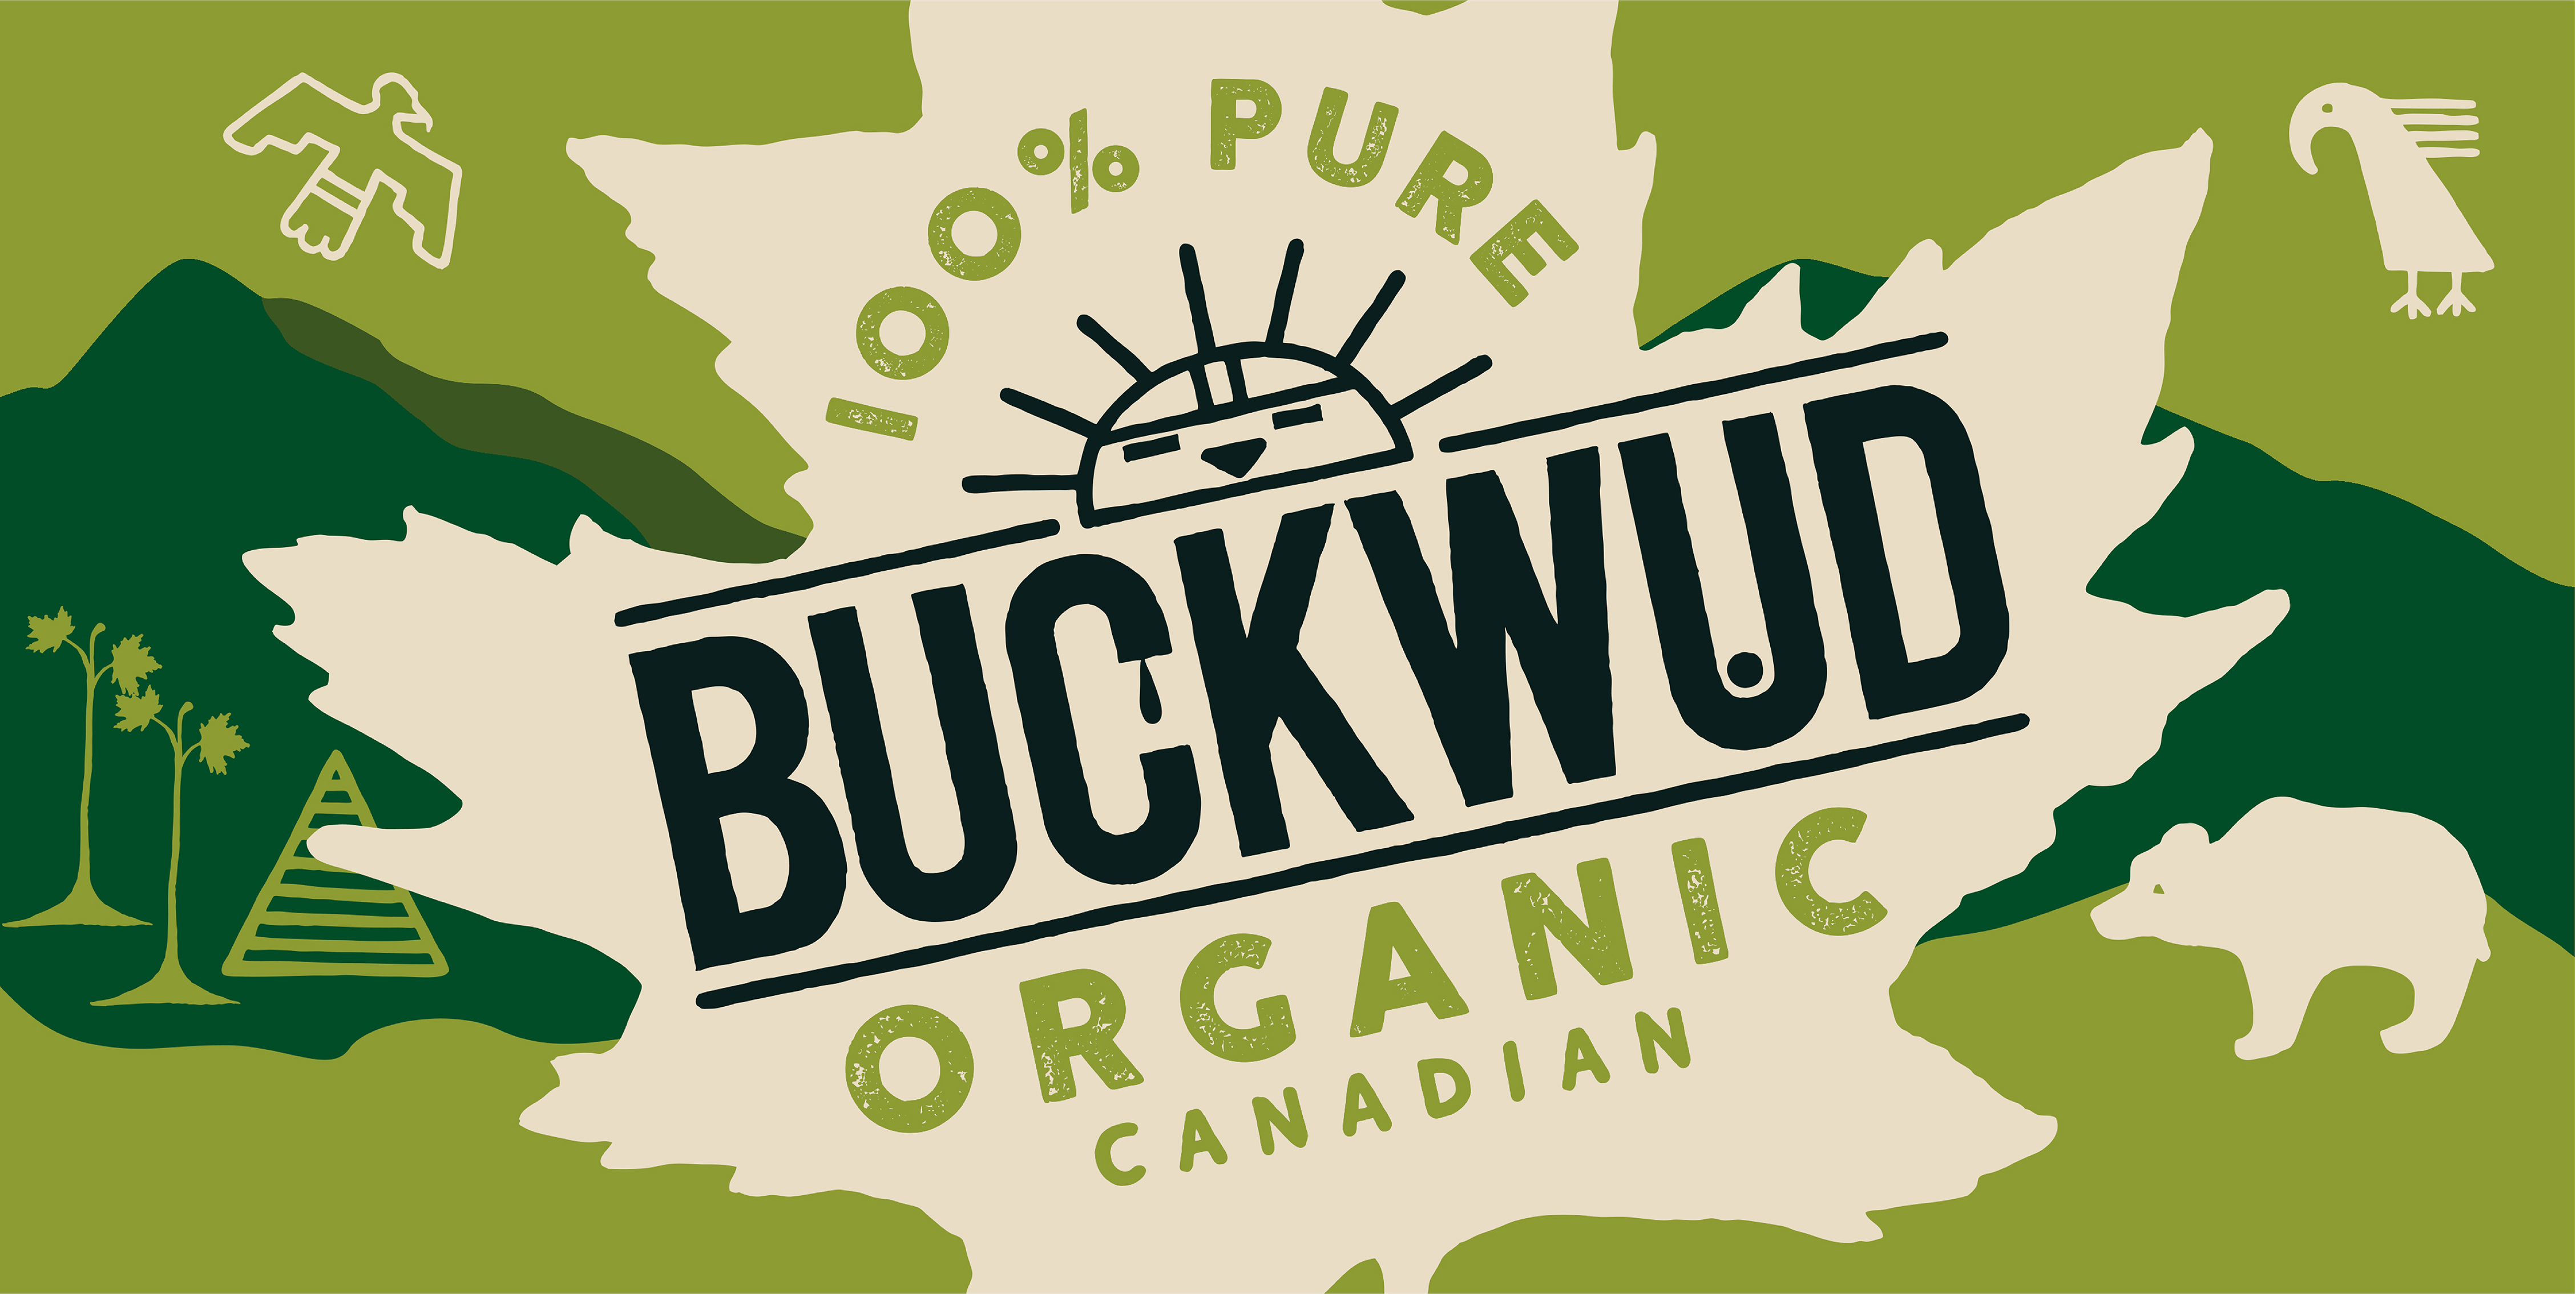 Buckwud Organic Aims to Drive Growth With Redesign by Bluemarlin